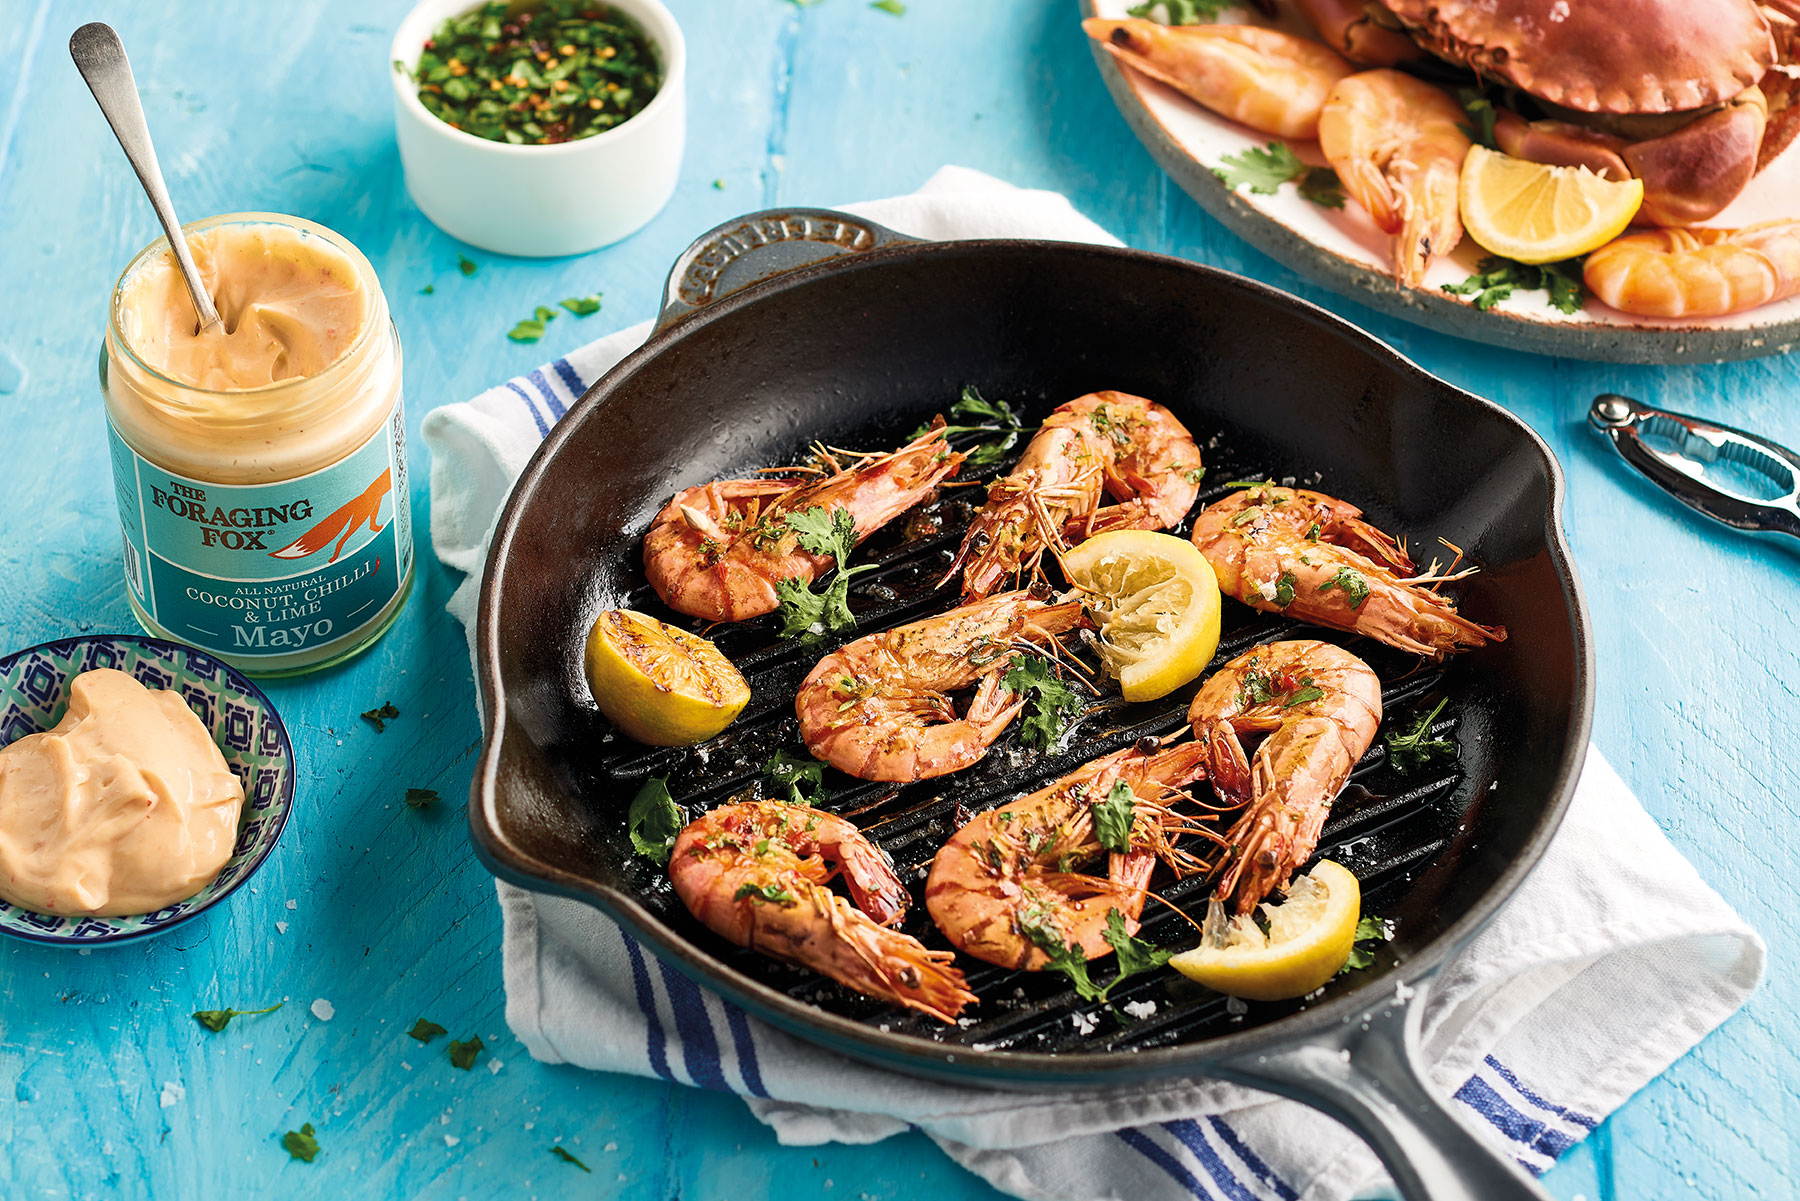 Prawns with coconut and chilli mayo